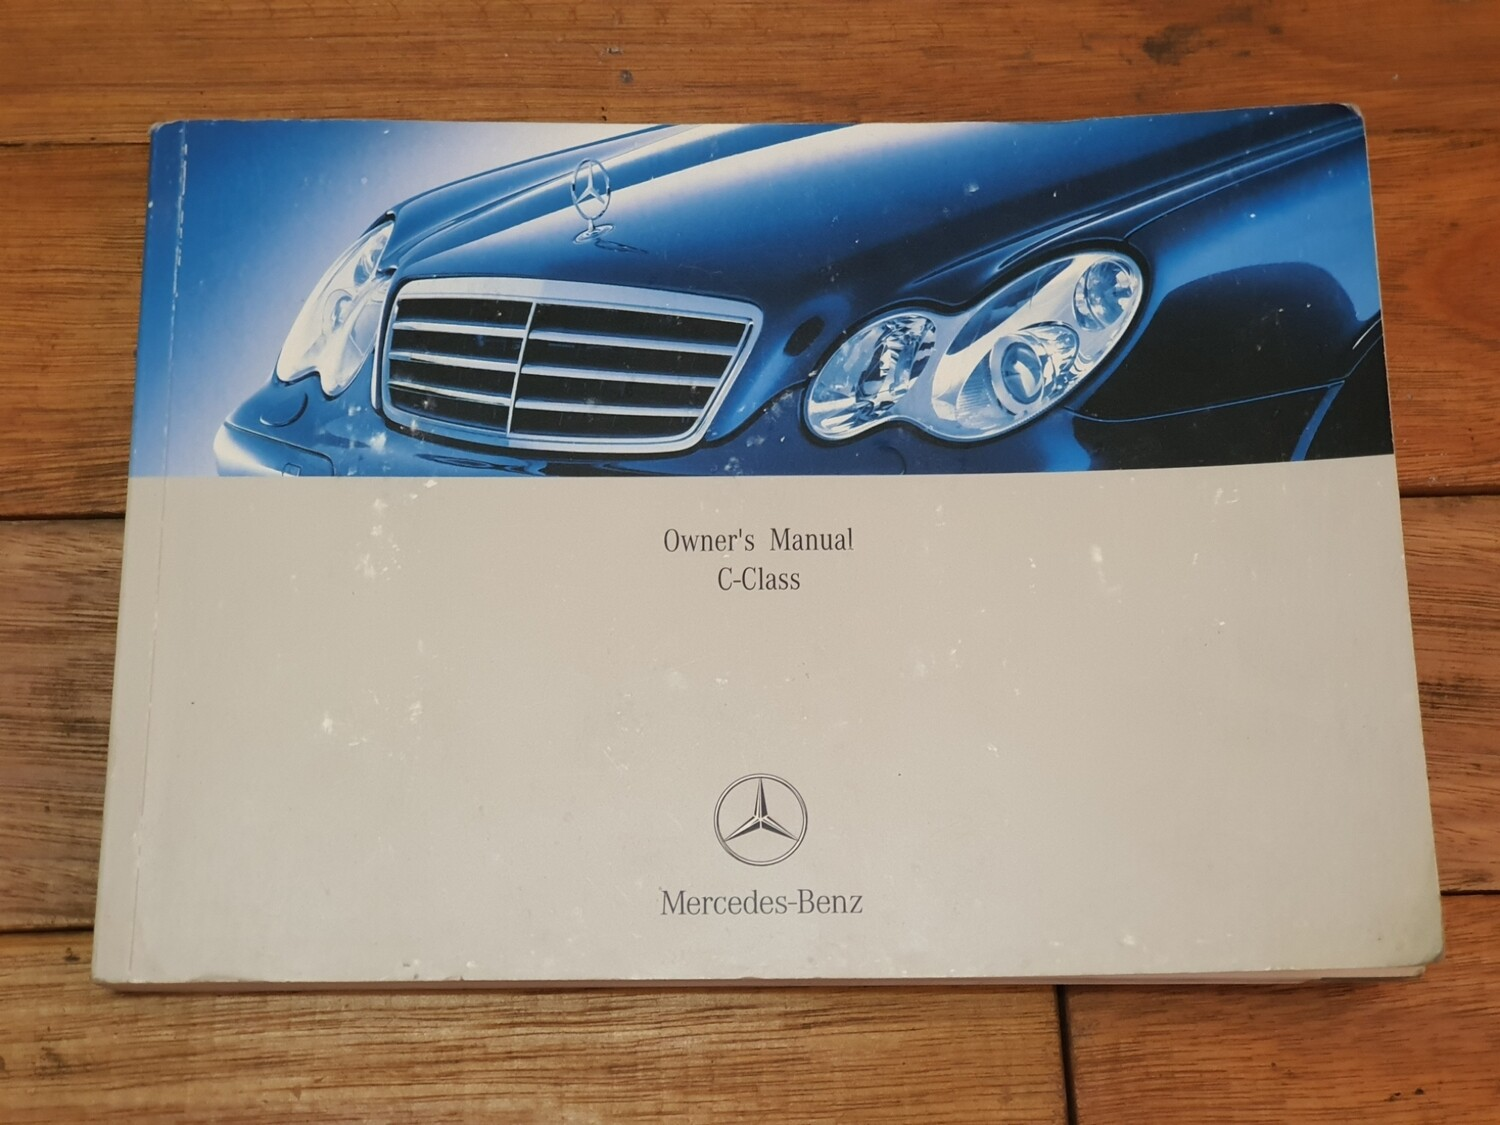 Mercedes-Benz Owners Manual (W203)